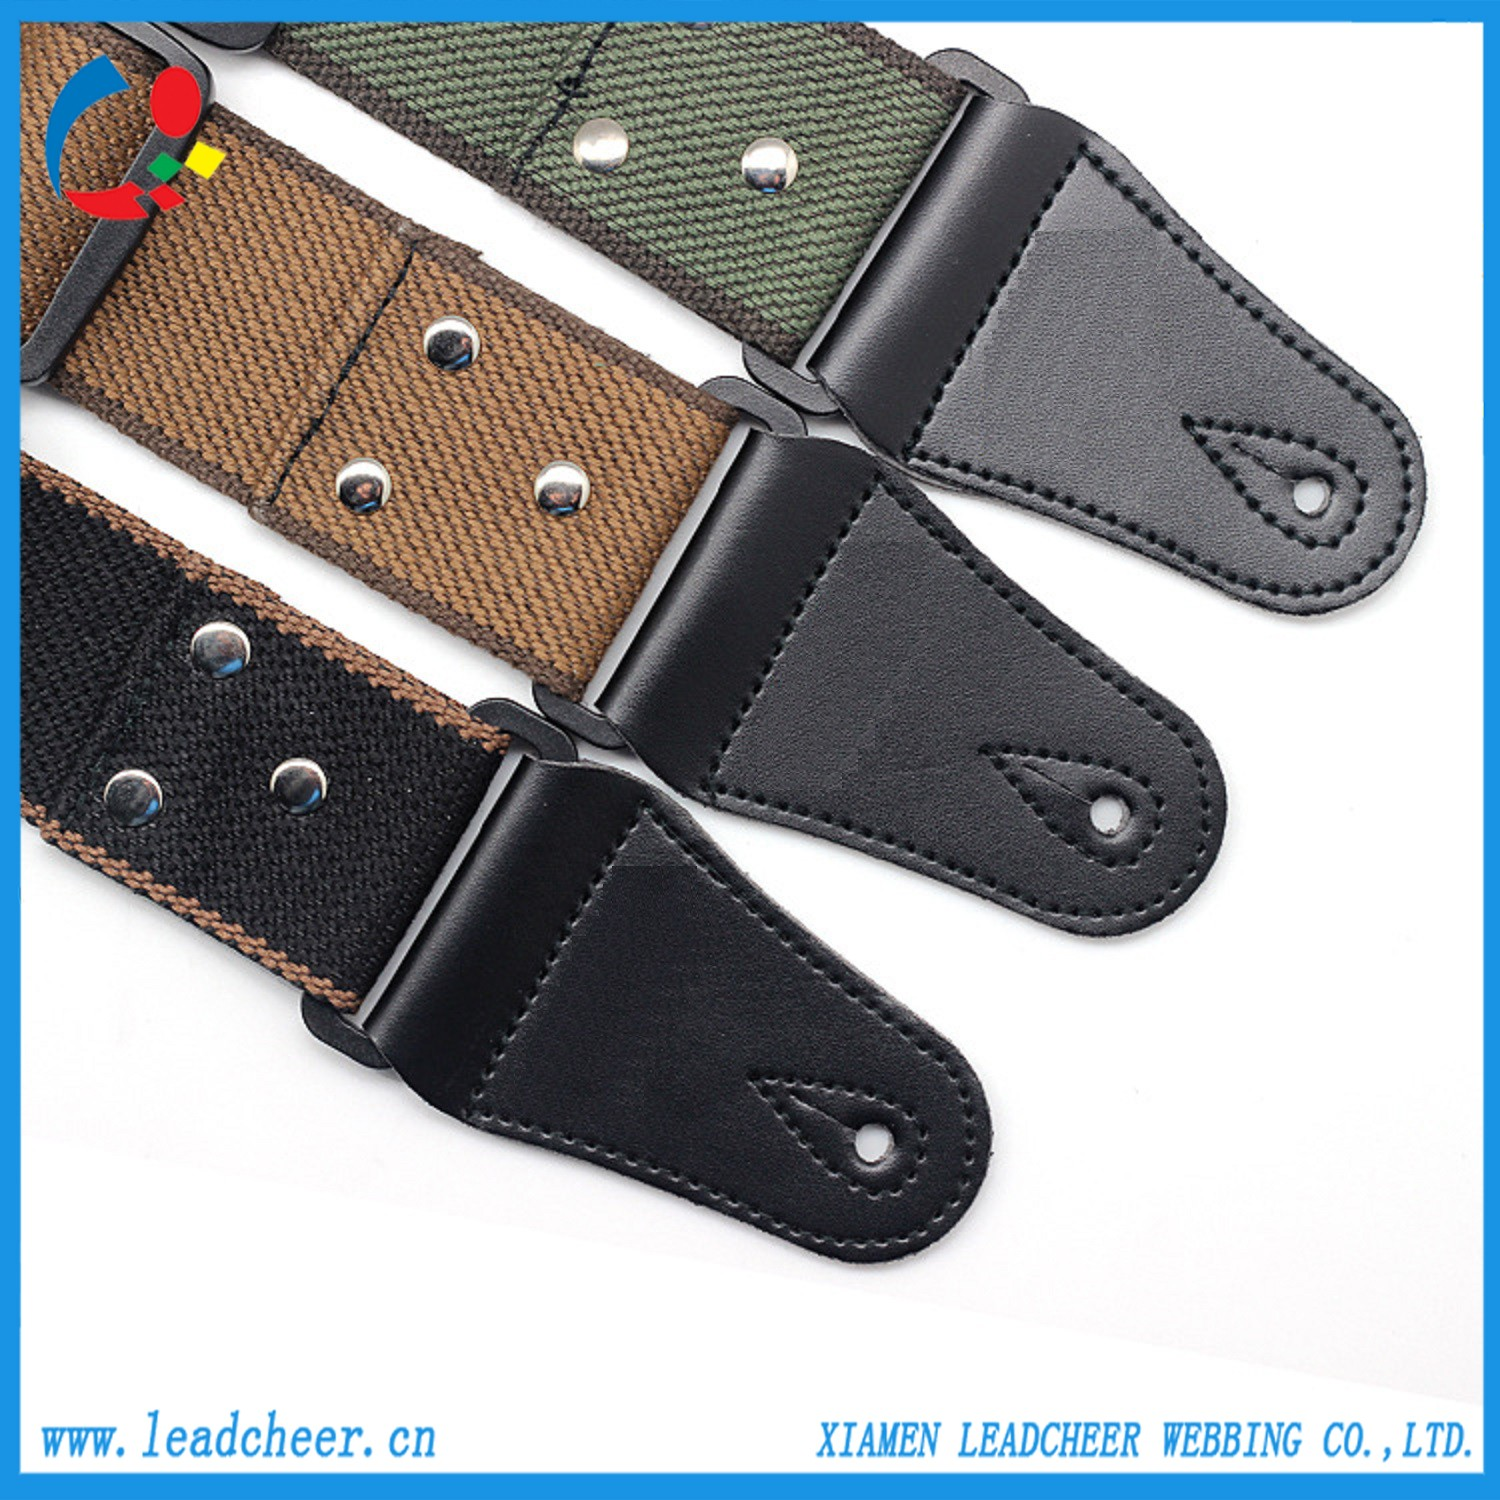 High quality Army Style Cotton Webbing Guitar Strap Ukulele Sling Quotes,China Army Style Cotton Webbing Guitar Strap Ukulele Sling Factory,Army Style Cotton Webbing Guitar Strap Ukulele Sling Purchasing